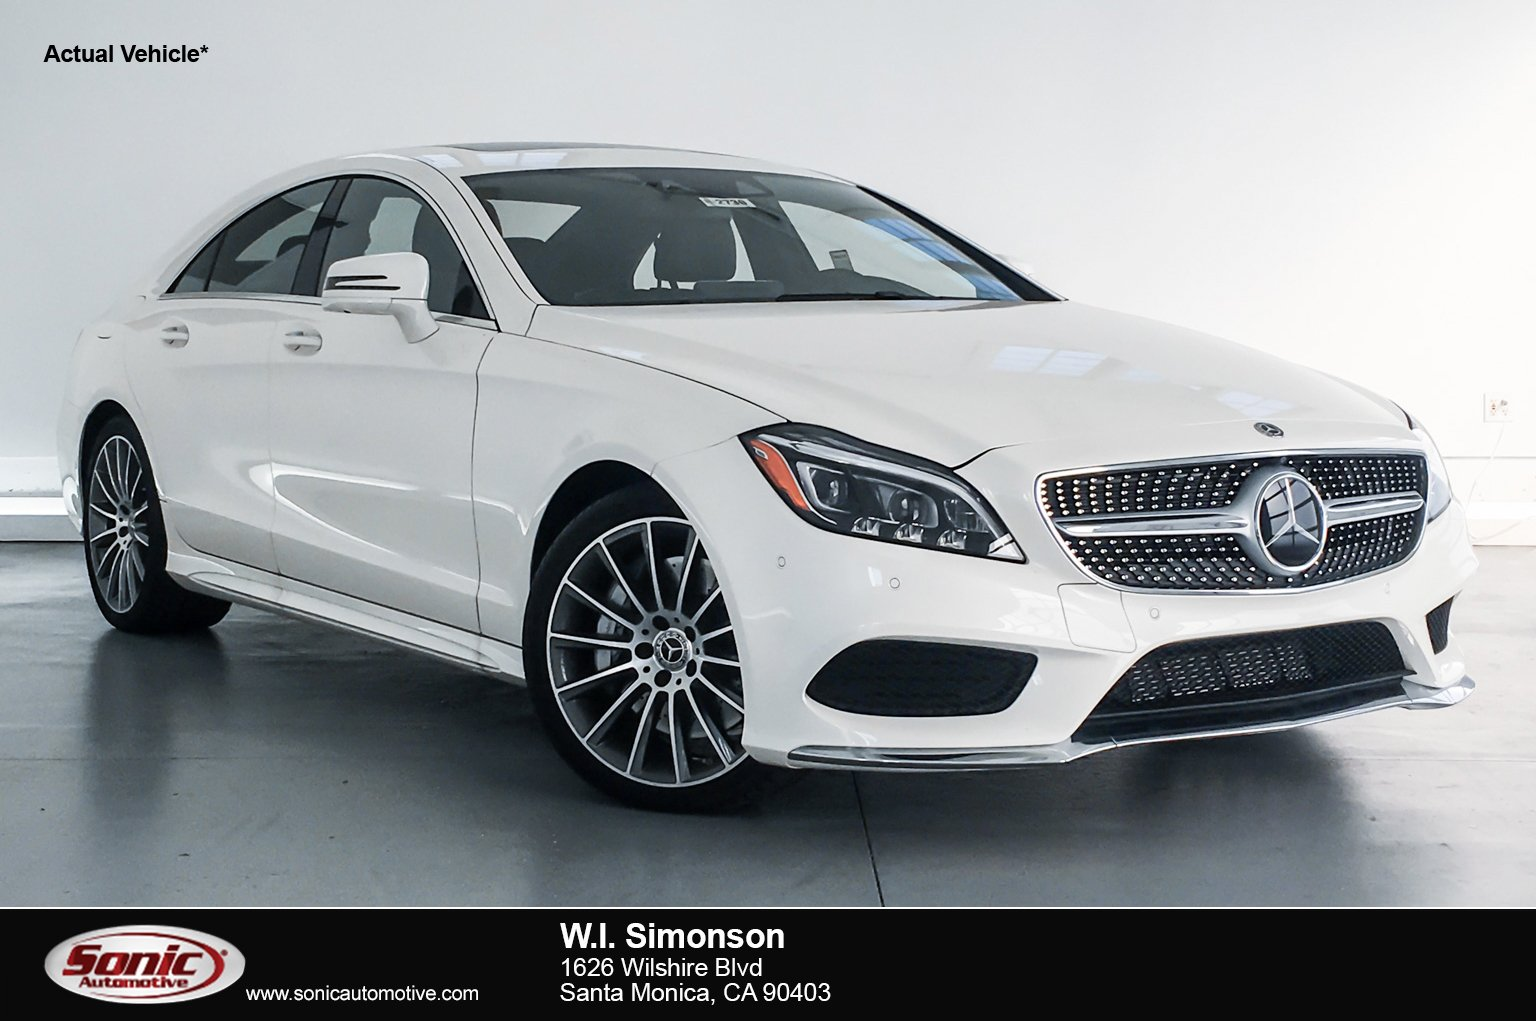 New 2018 Mercedes Benz CLS 550 Coupe For Sale In Santa Monica, CA